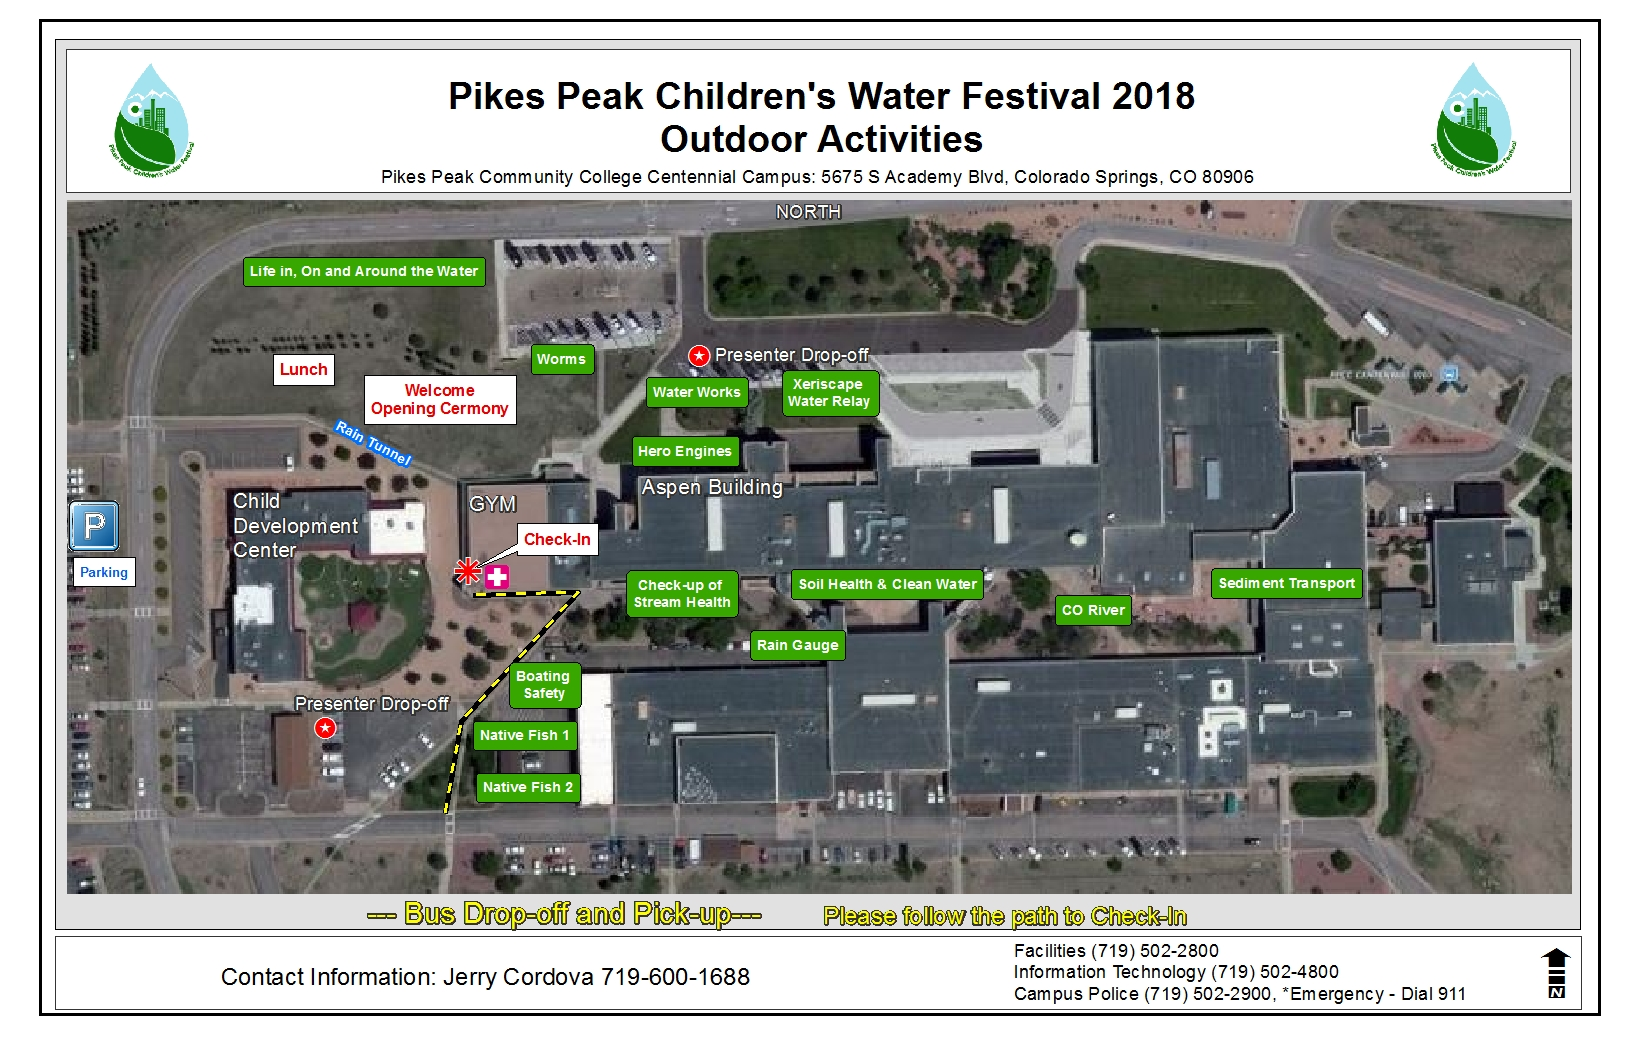 Ppcc Campus Map.Presenter Information For Pikes Peak Children S Water Festival